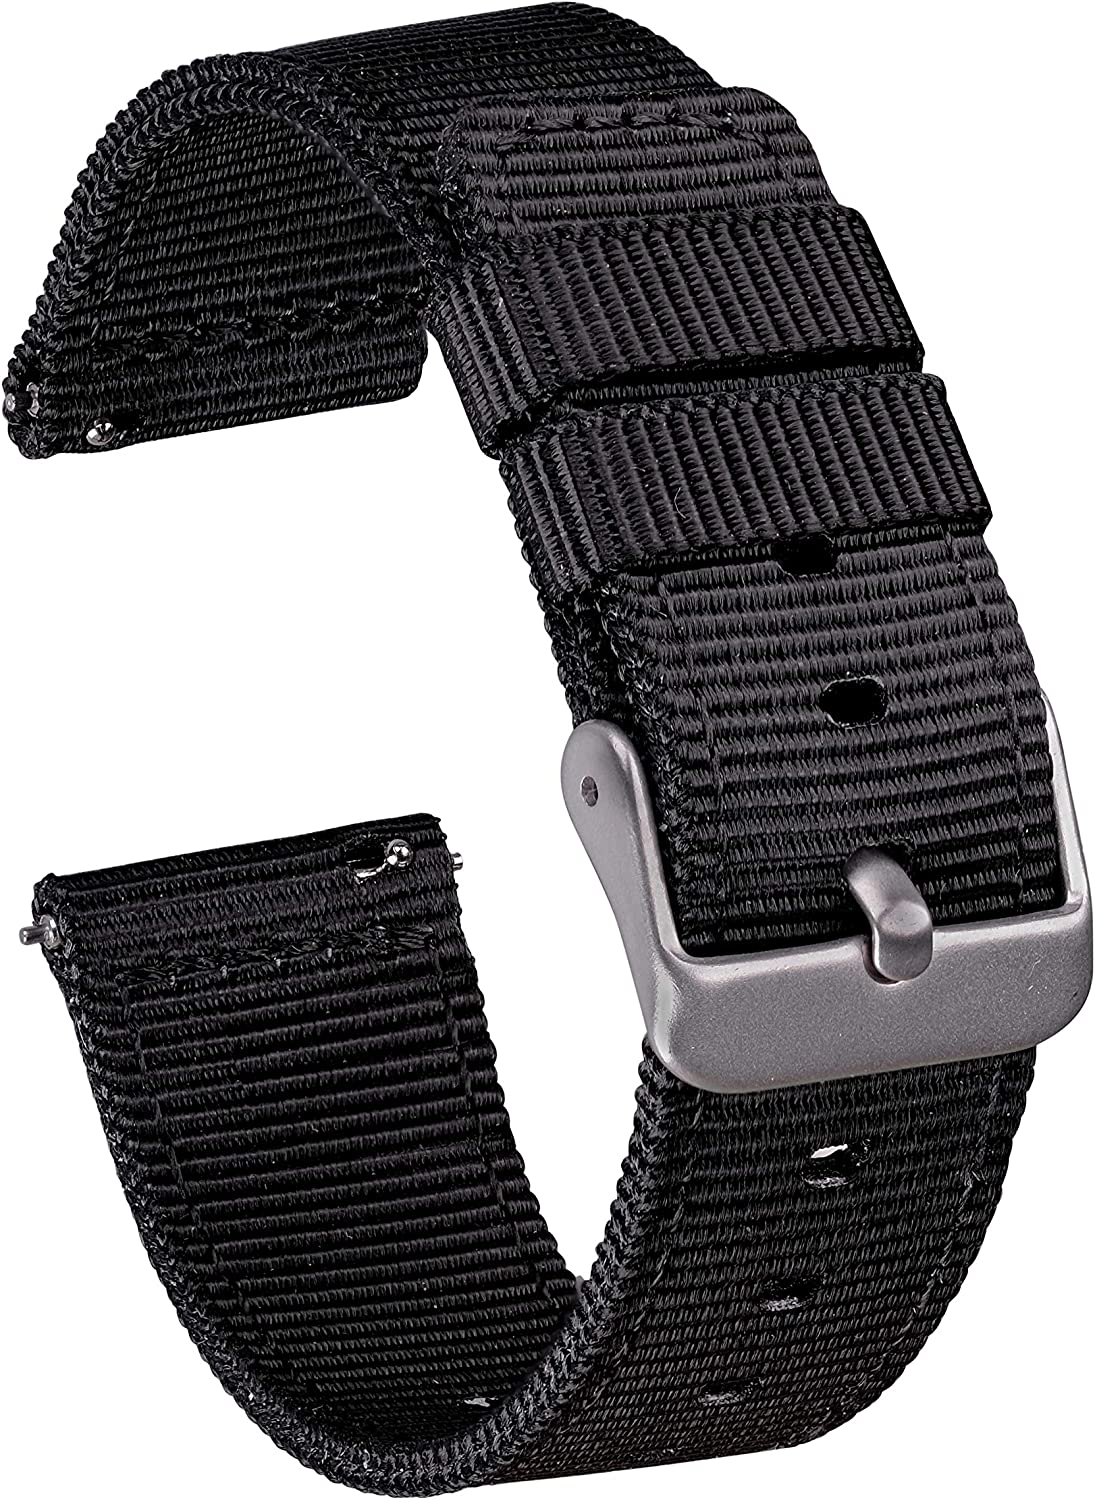 GadgetWraps 20mm Gizmo Watch Nylon Watch Band with Quick Release Pins – Compatible with Gizmo Watch, Samsung, Pebble – 20mm Nylon Watch Band (Black, 20mm)